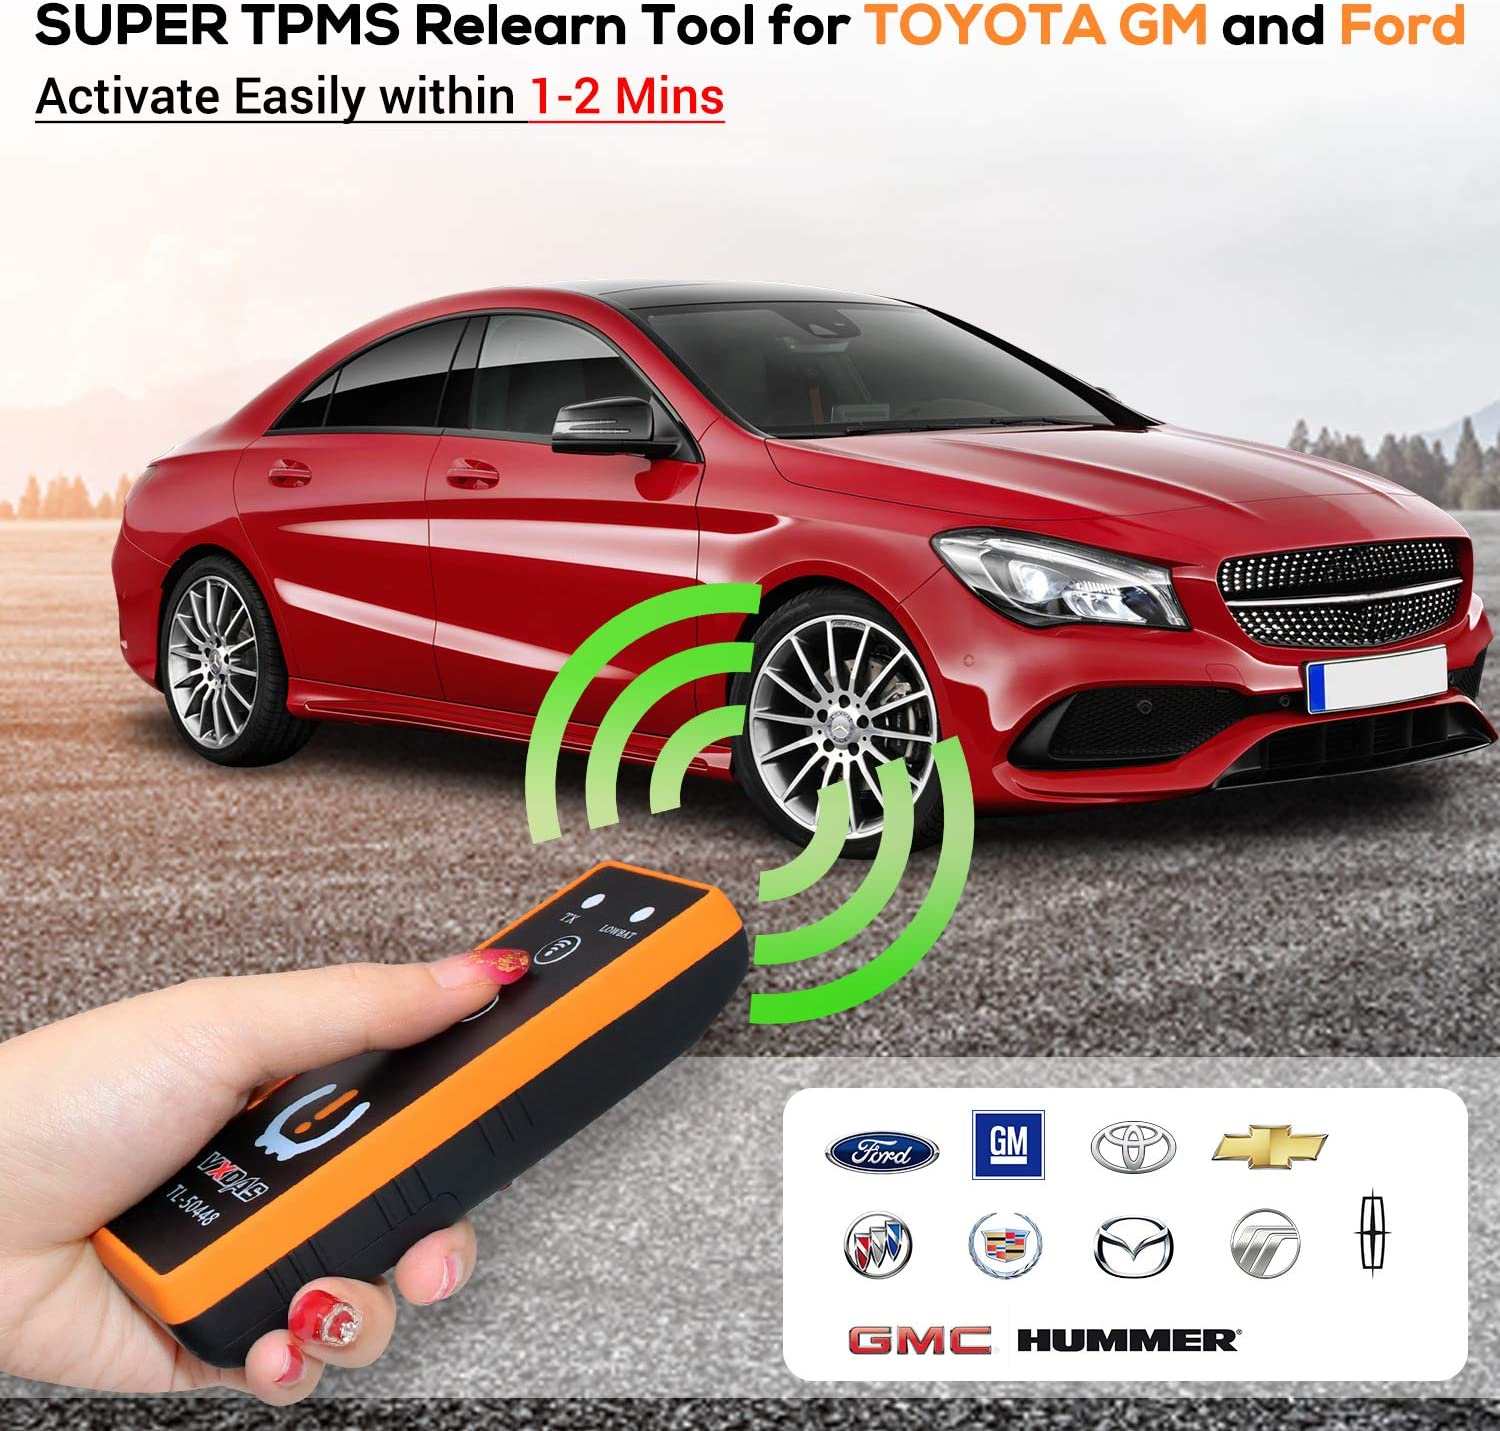 Arozk 3IN1 TPMS Relearn Reset Tool for Toyota GM Ford Tire Pressure Monitor Sensor Activation Super TL-50448 Auto TPMS Reset Tool 2020 Edition